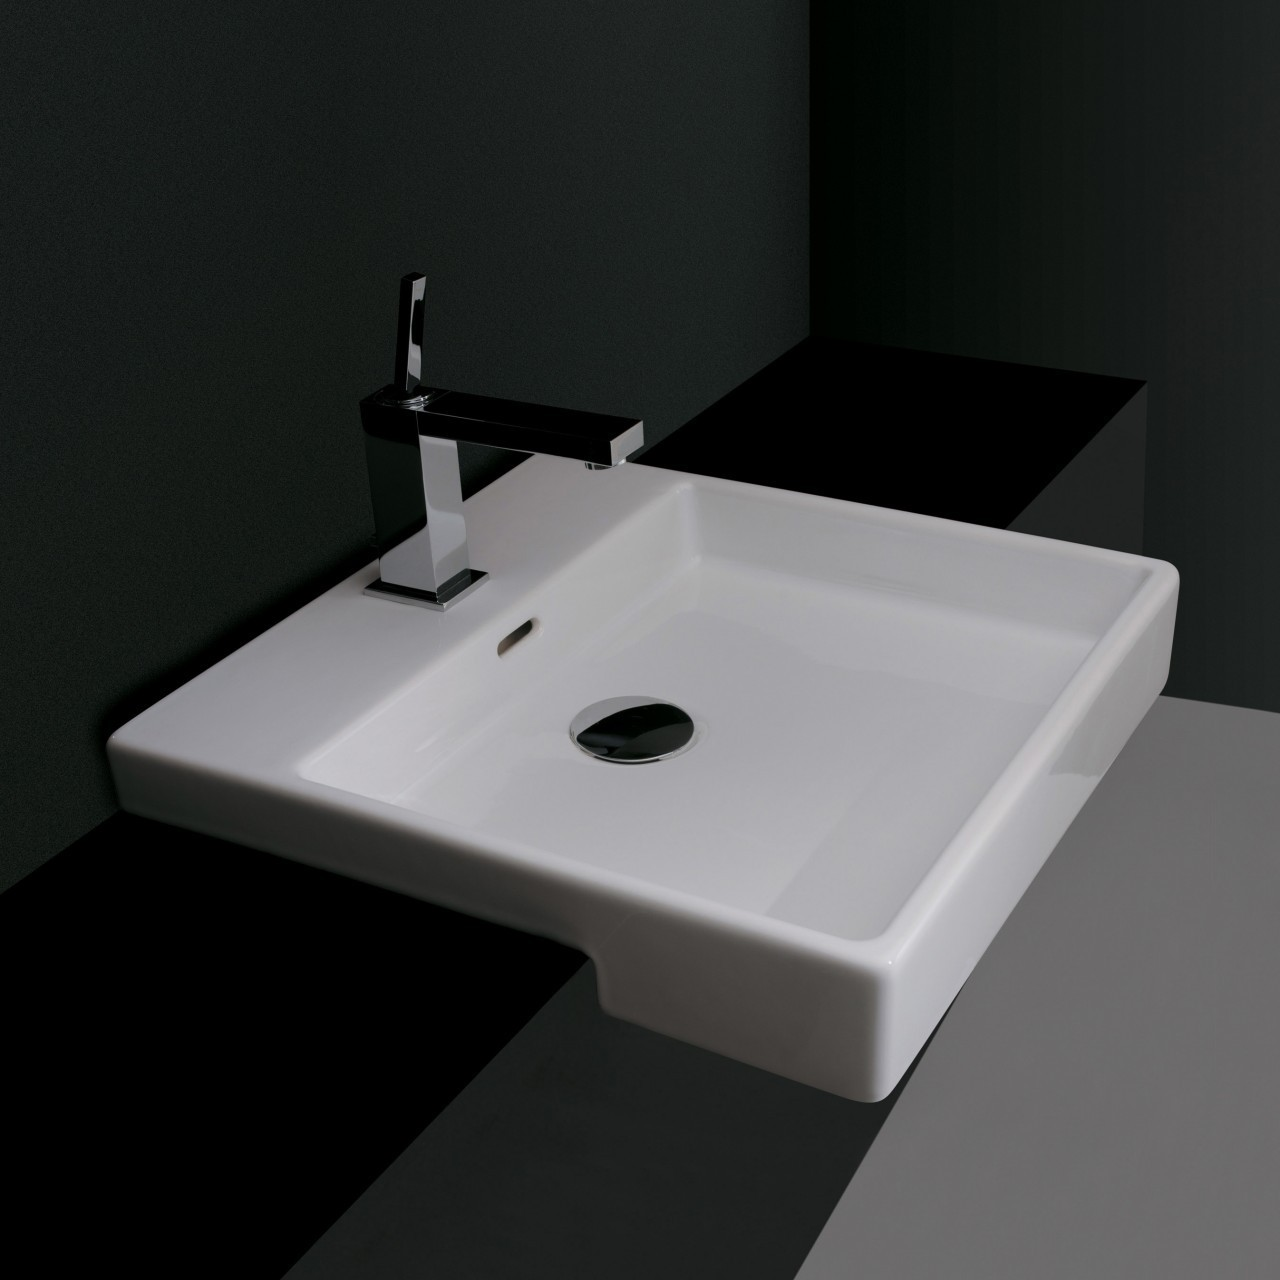 /wp/wp-content/uploads/2019/11/plain-45s-semi-recessed-bathroom-sink-17-7-320.jpg